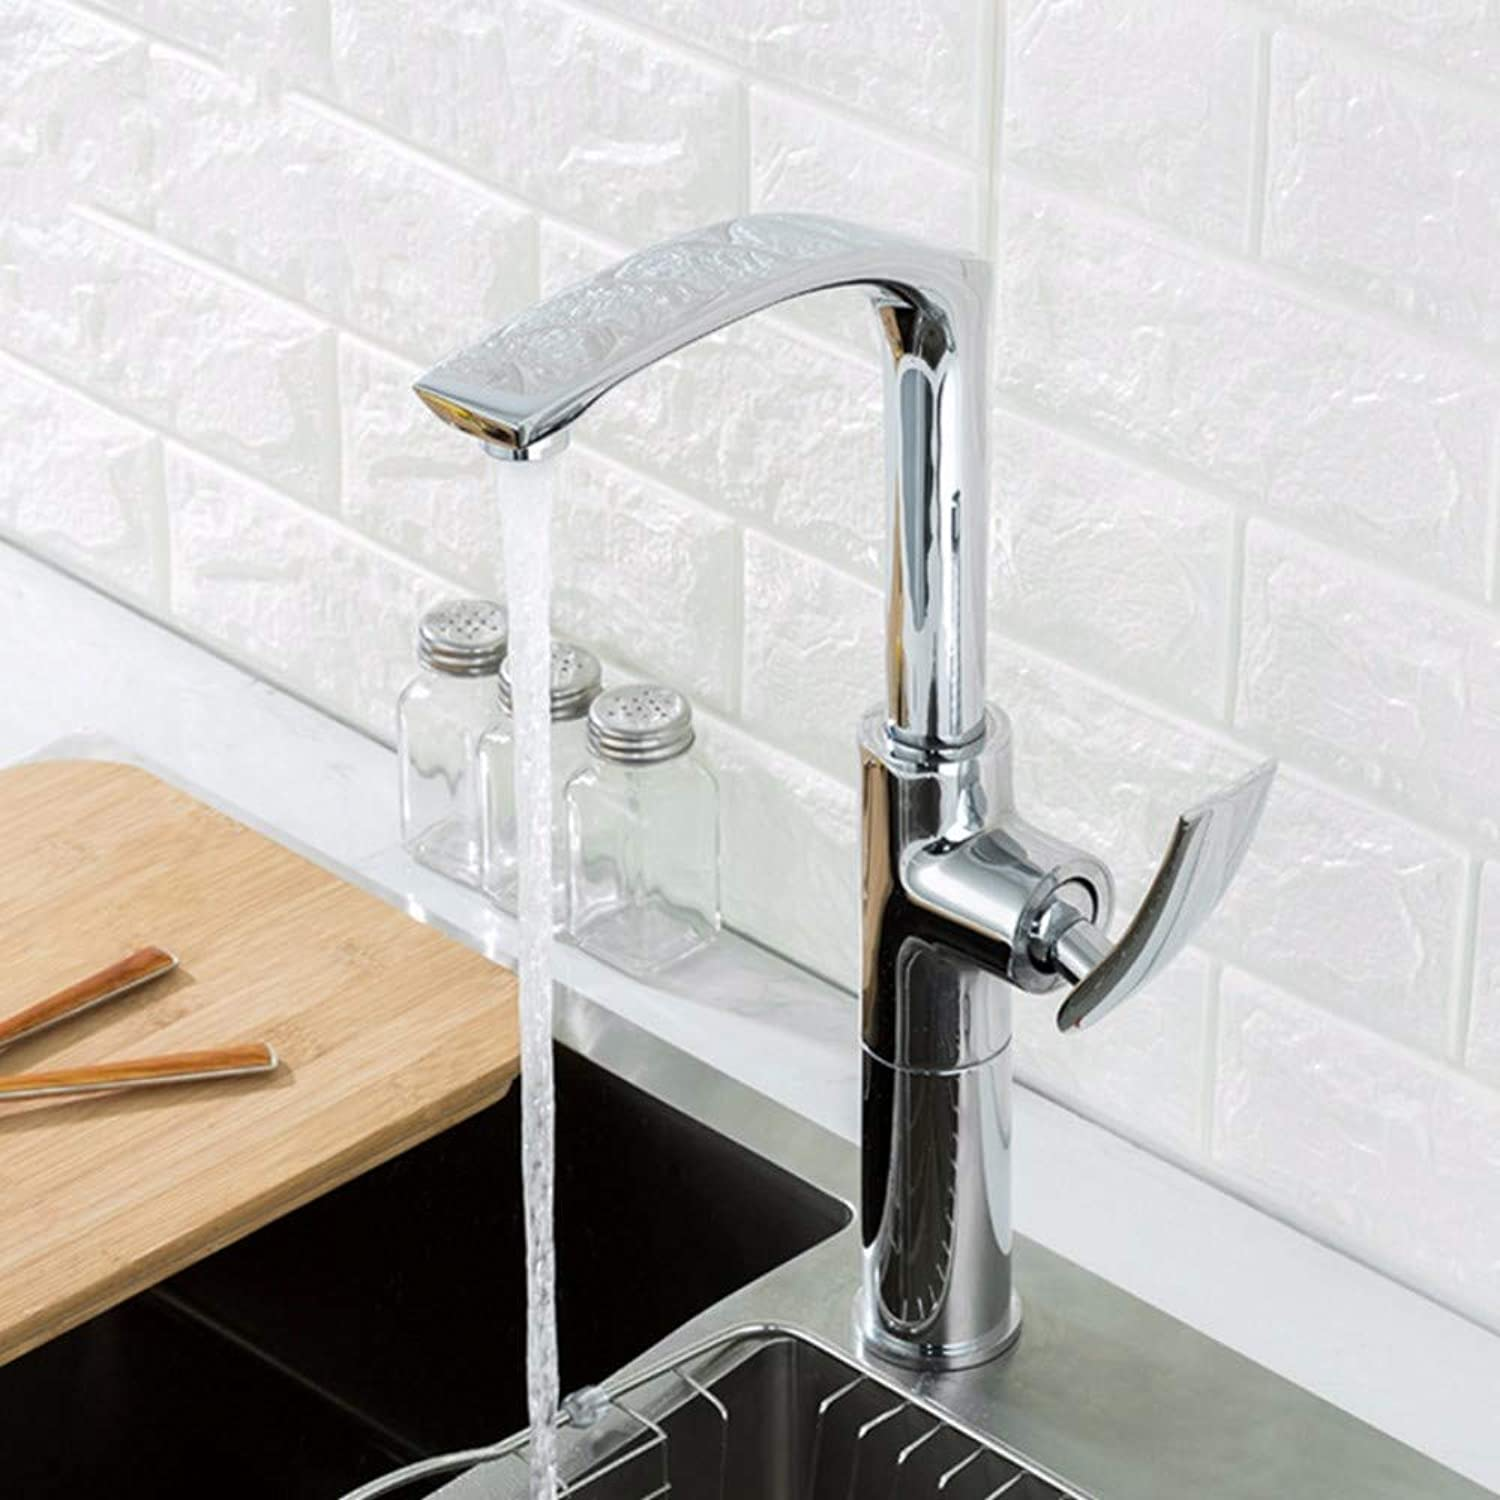 Faucet Single Handle Kitchen Stand Mixer High Chrome Washbasin Faucet Bathroom Faucet Height Adjustable Hot and Cold Mixer